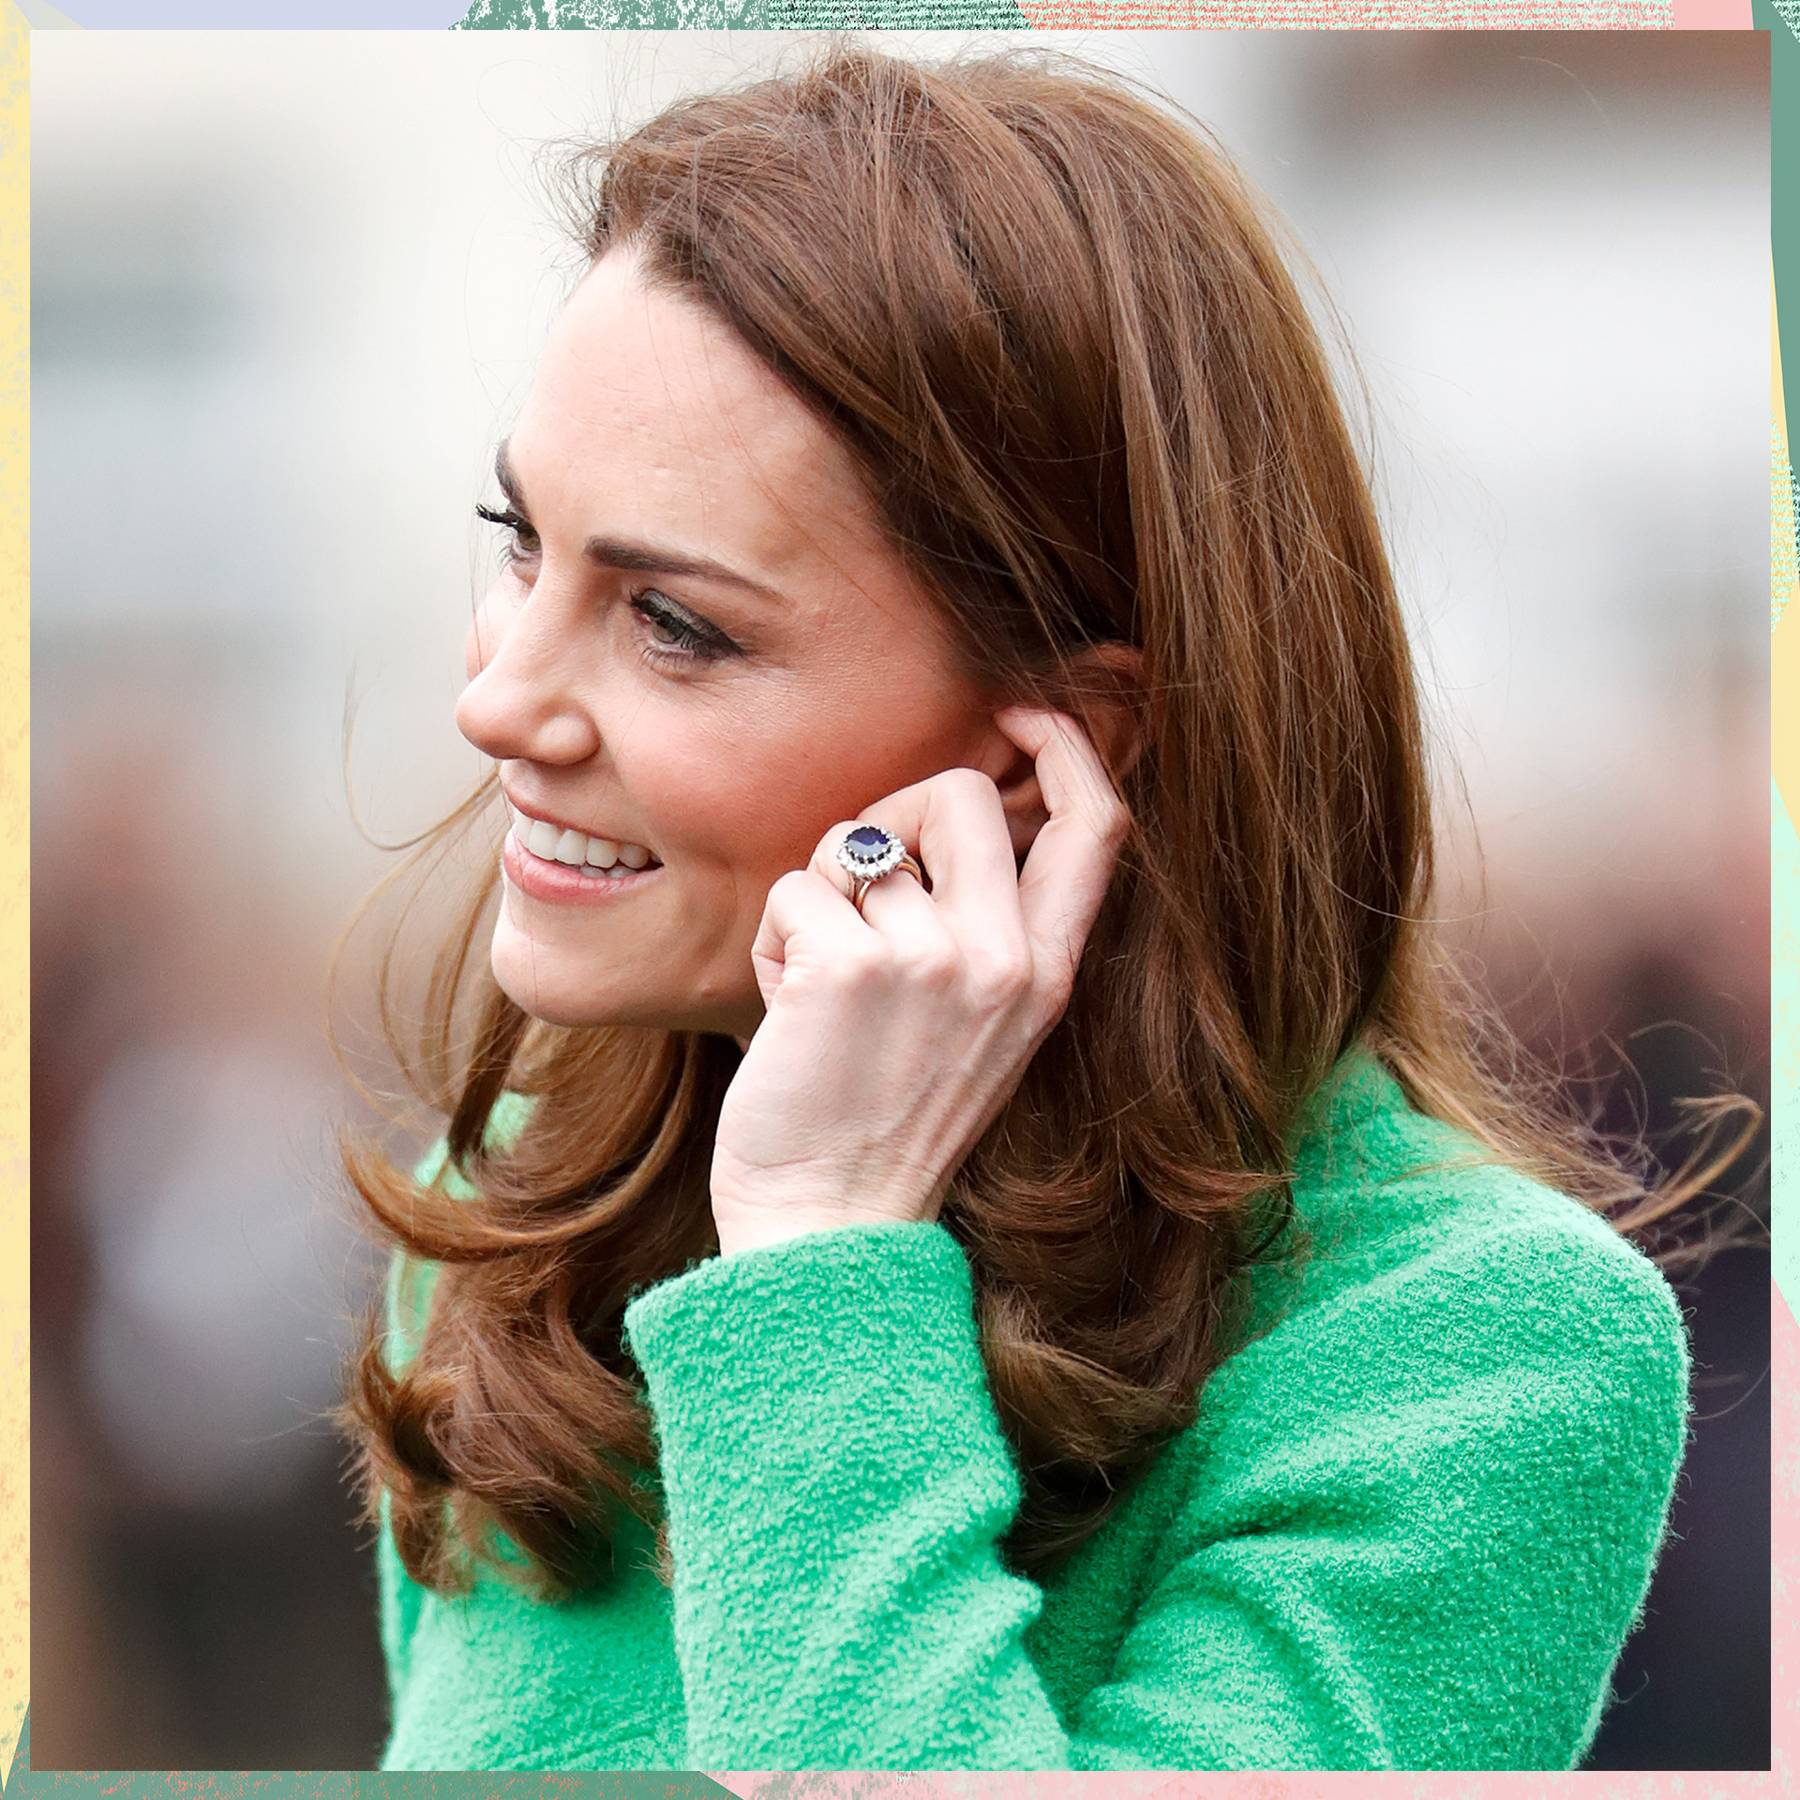 This is where you can get a copy of Kate Middleton's engagement ring at a snip of the price